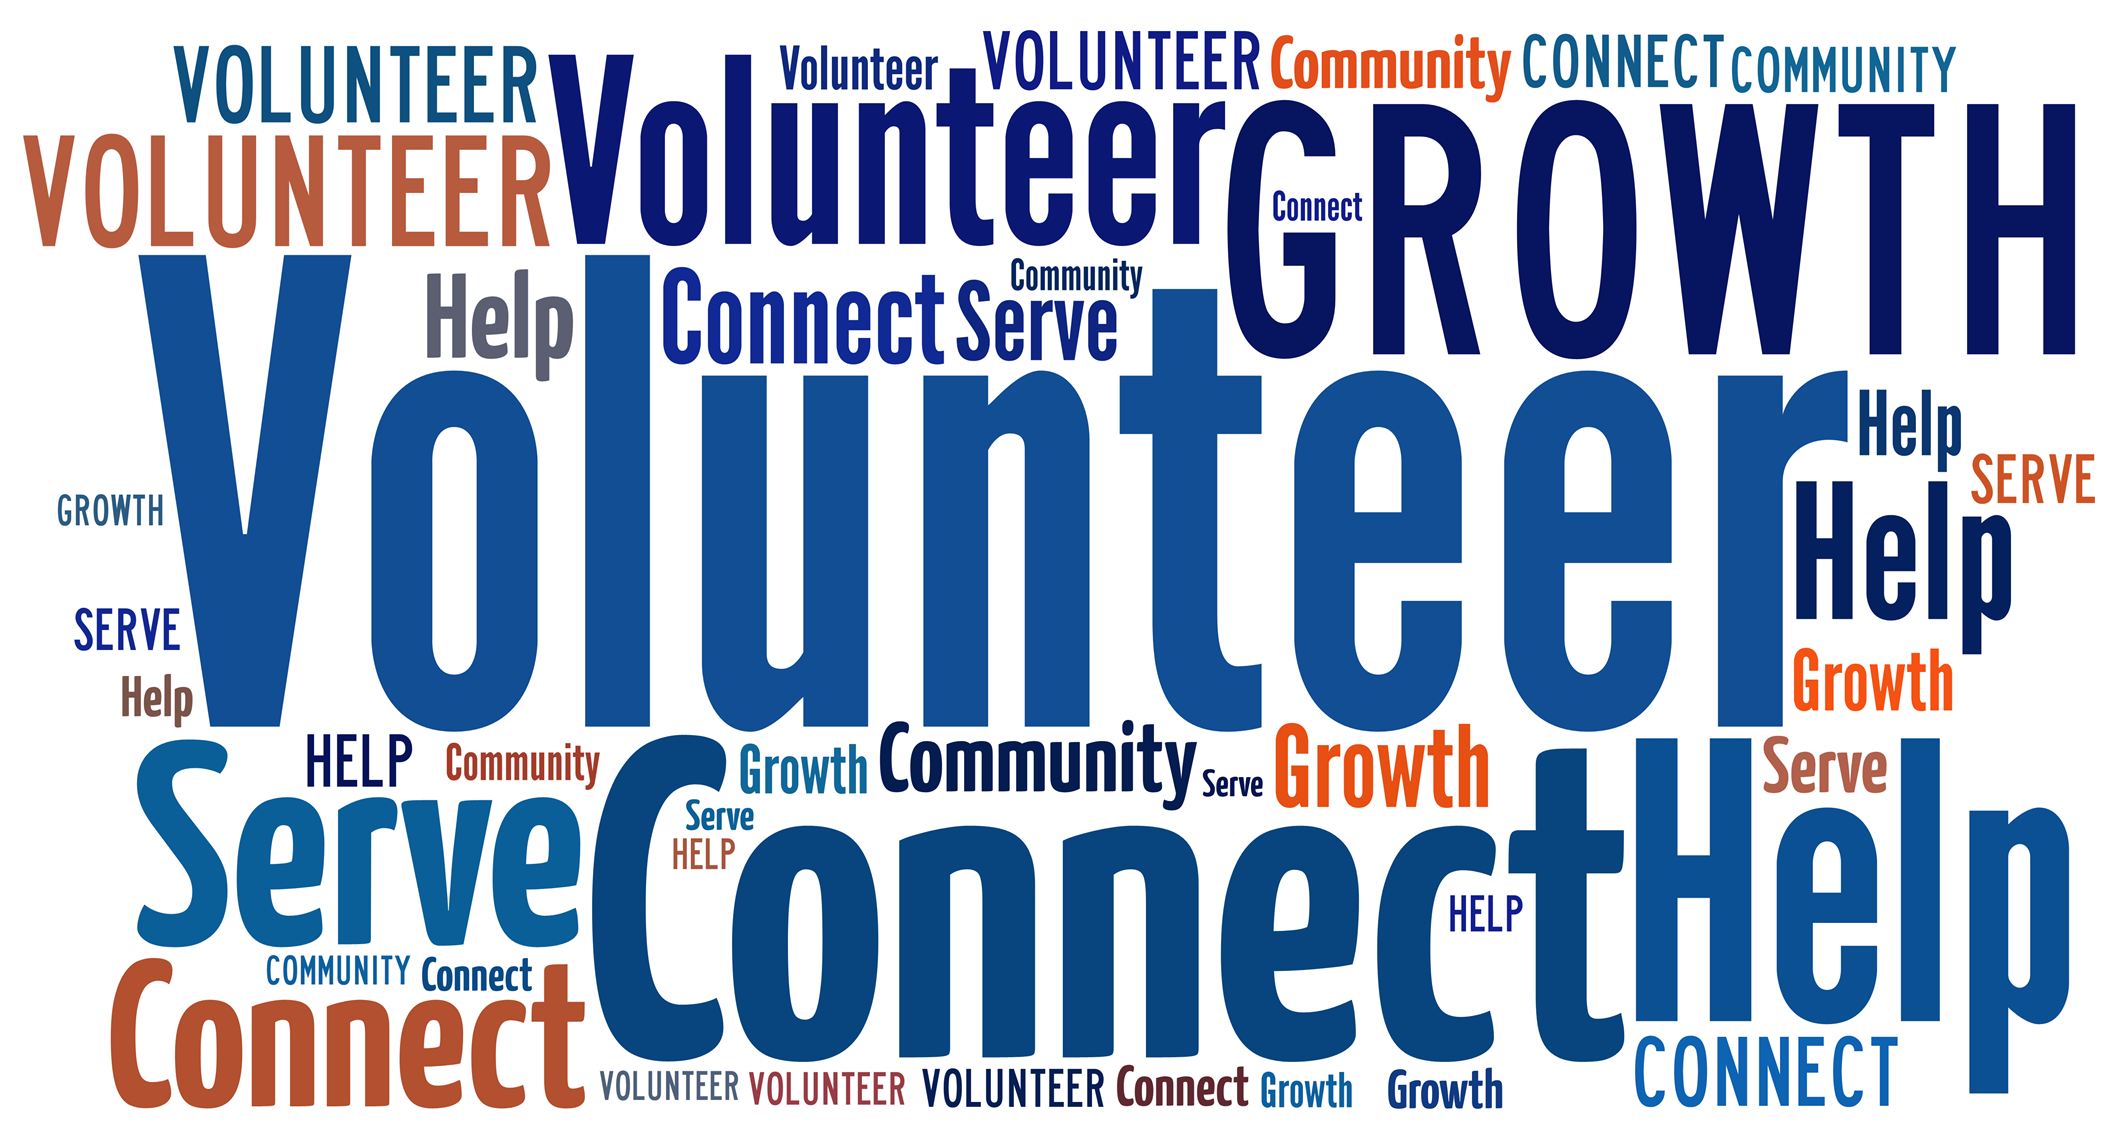 Graphic Image with Volunteer Collage